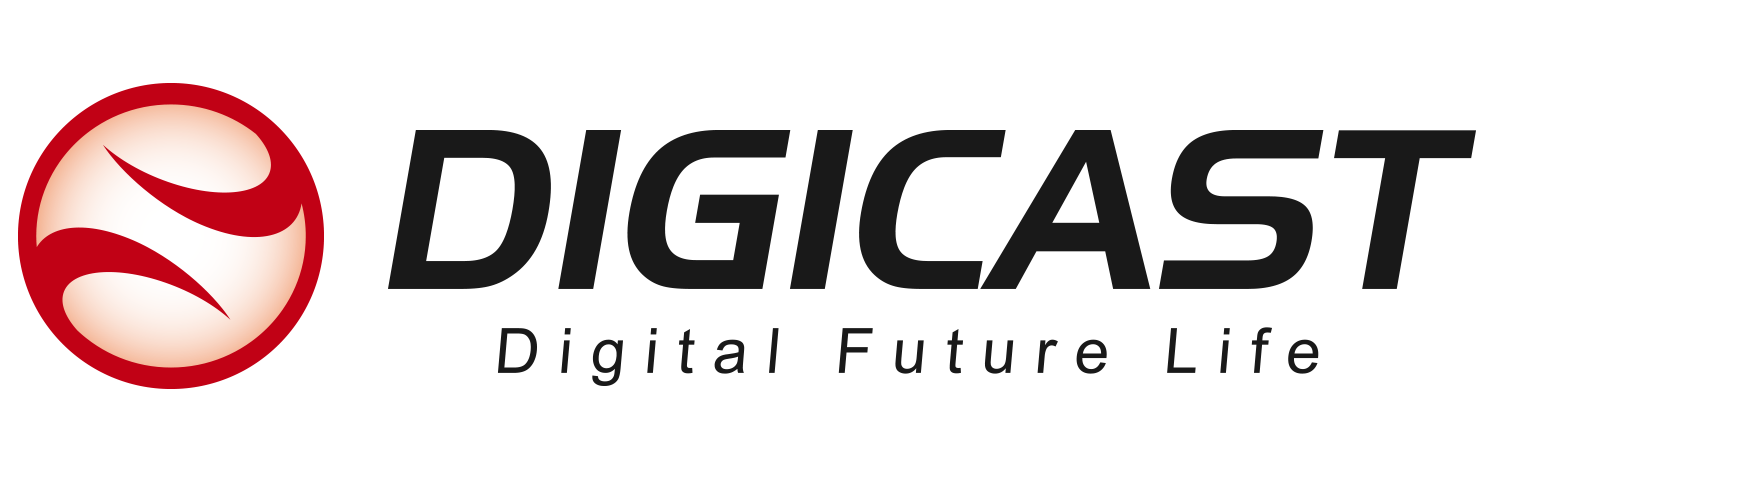 DIGICASTCHINA